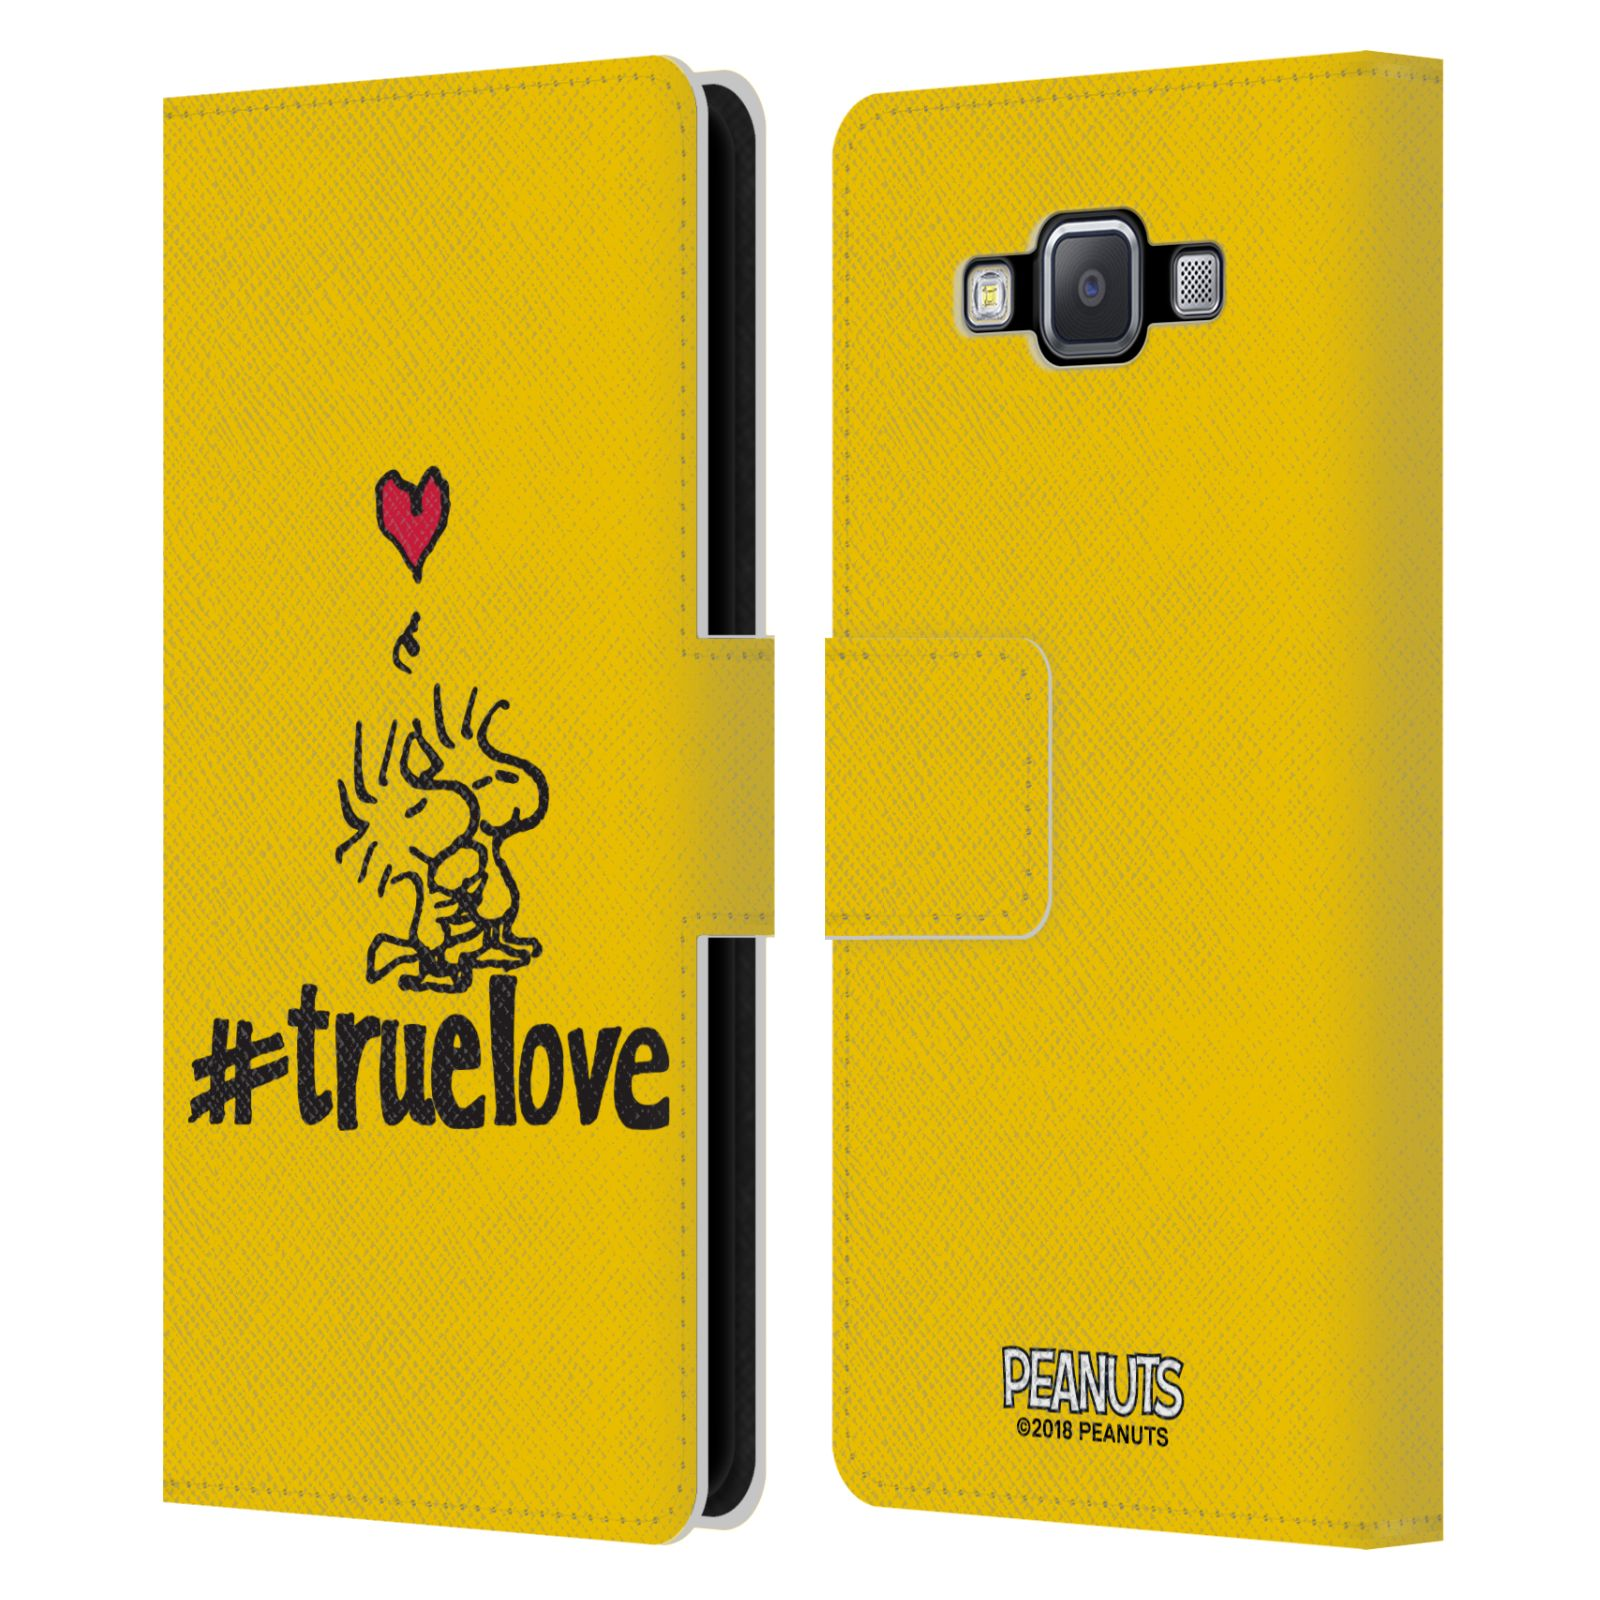 OFFICIAL-PEANUTS-SEALED-WITH-A-KISS-LEATHER-BOOK-CASE-FOR-SAMSUNG-PHONES-2